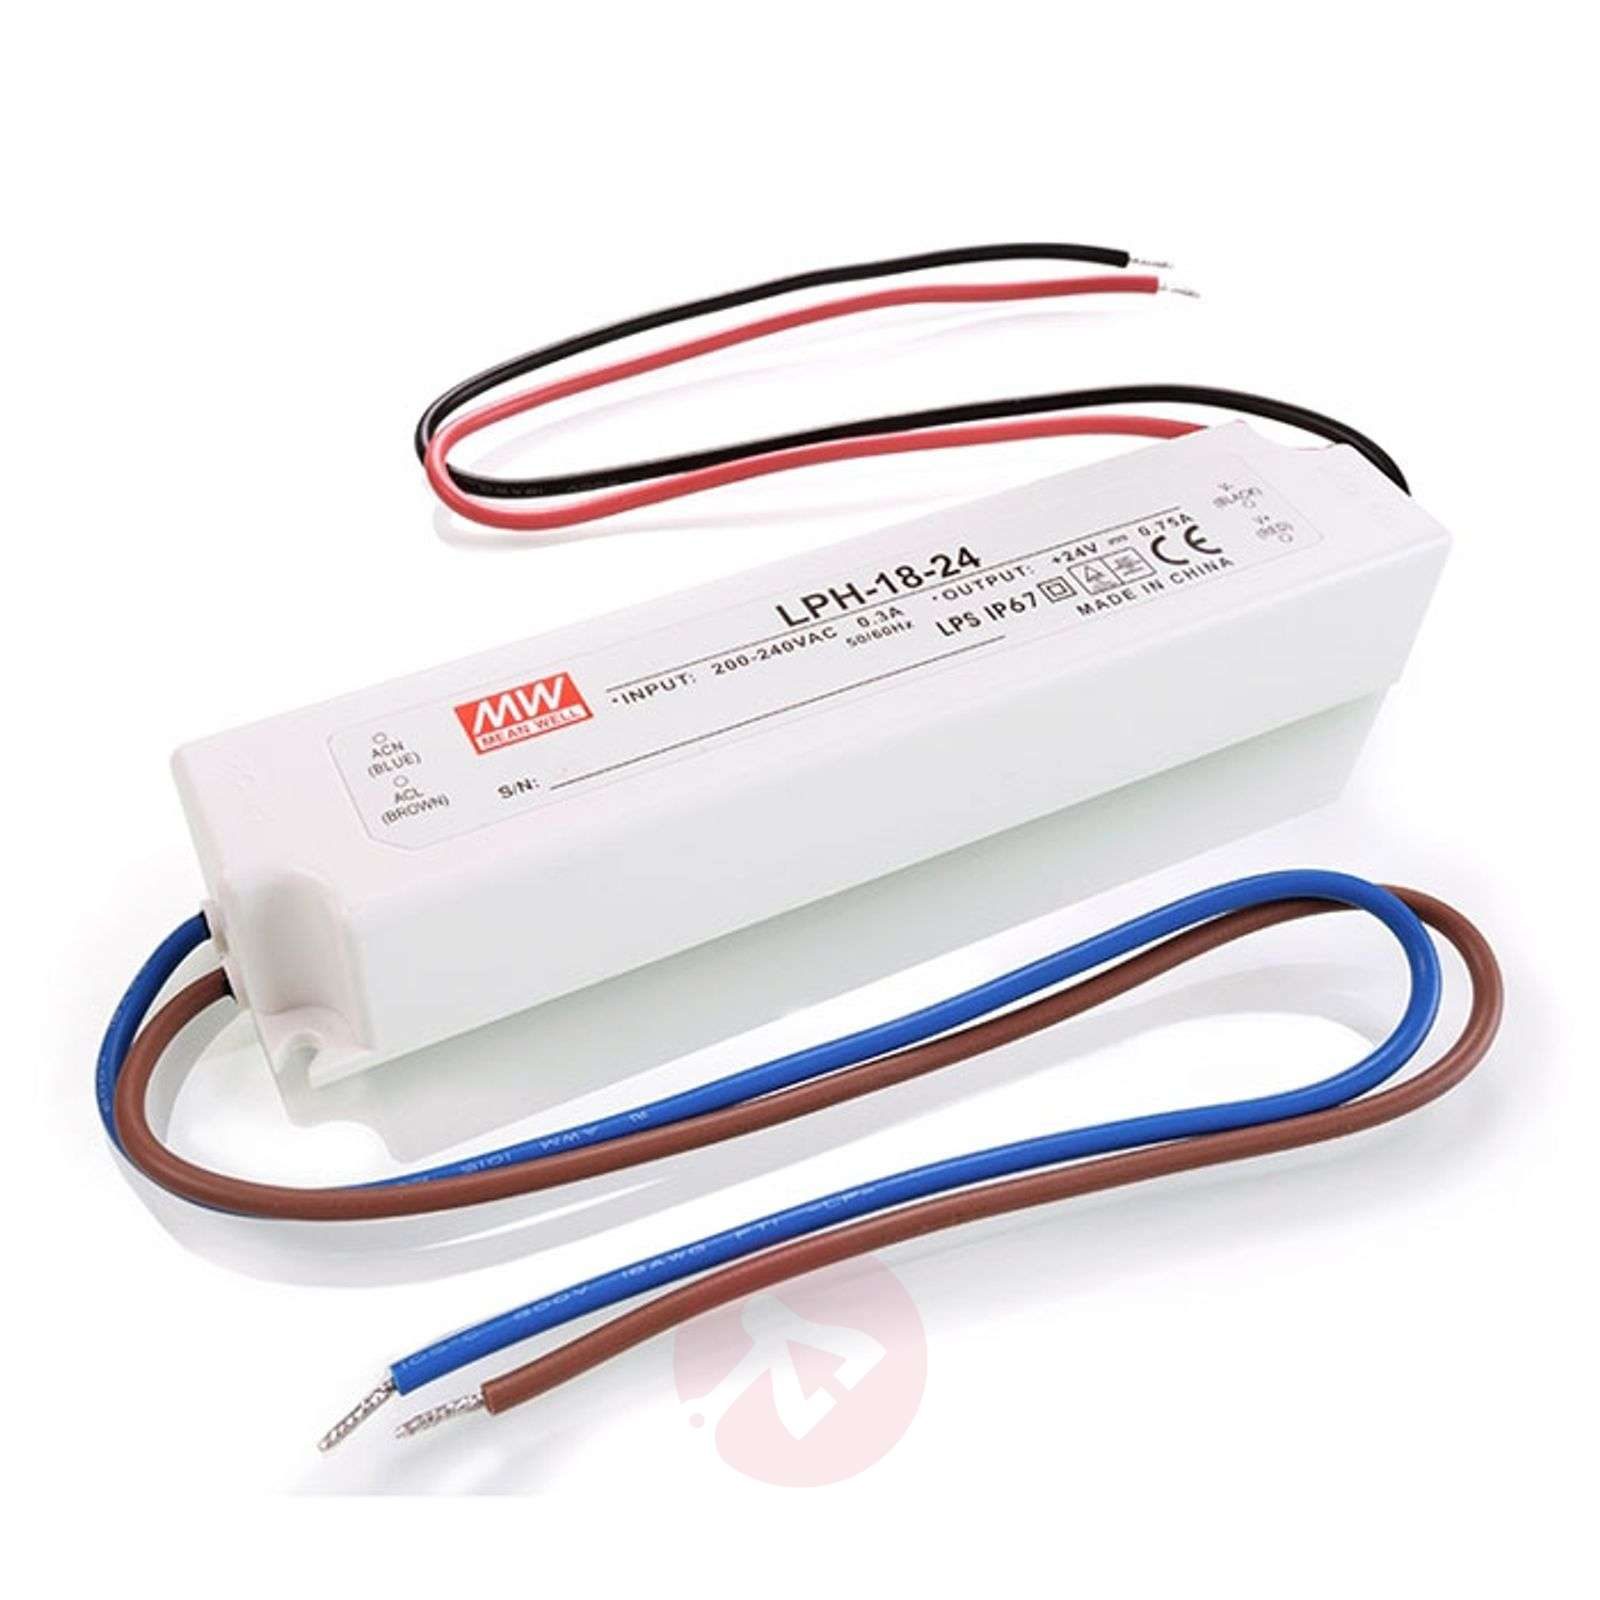 Bloc d'alimentation Mean Well 18W-2500050-01